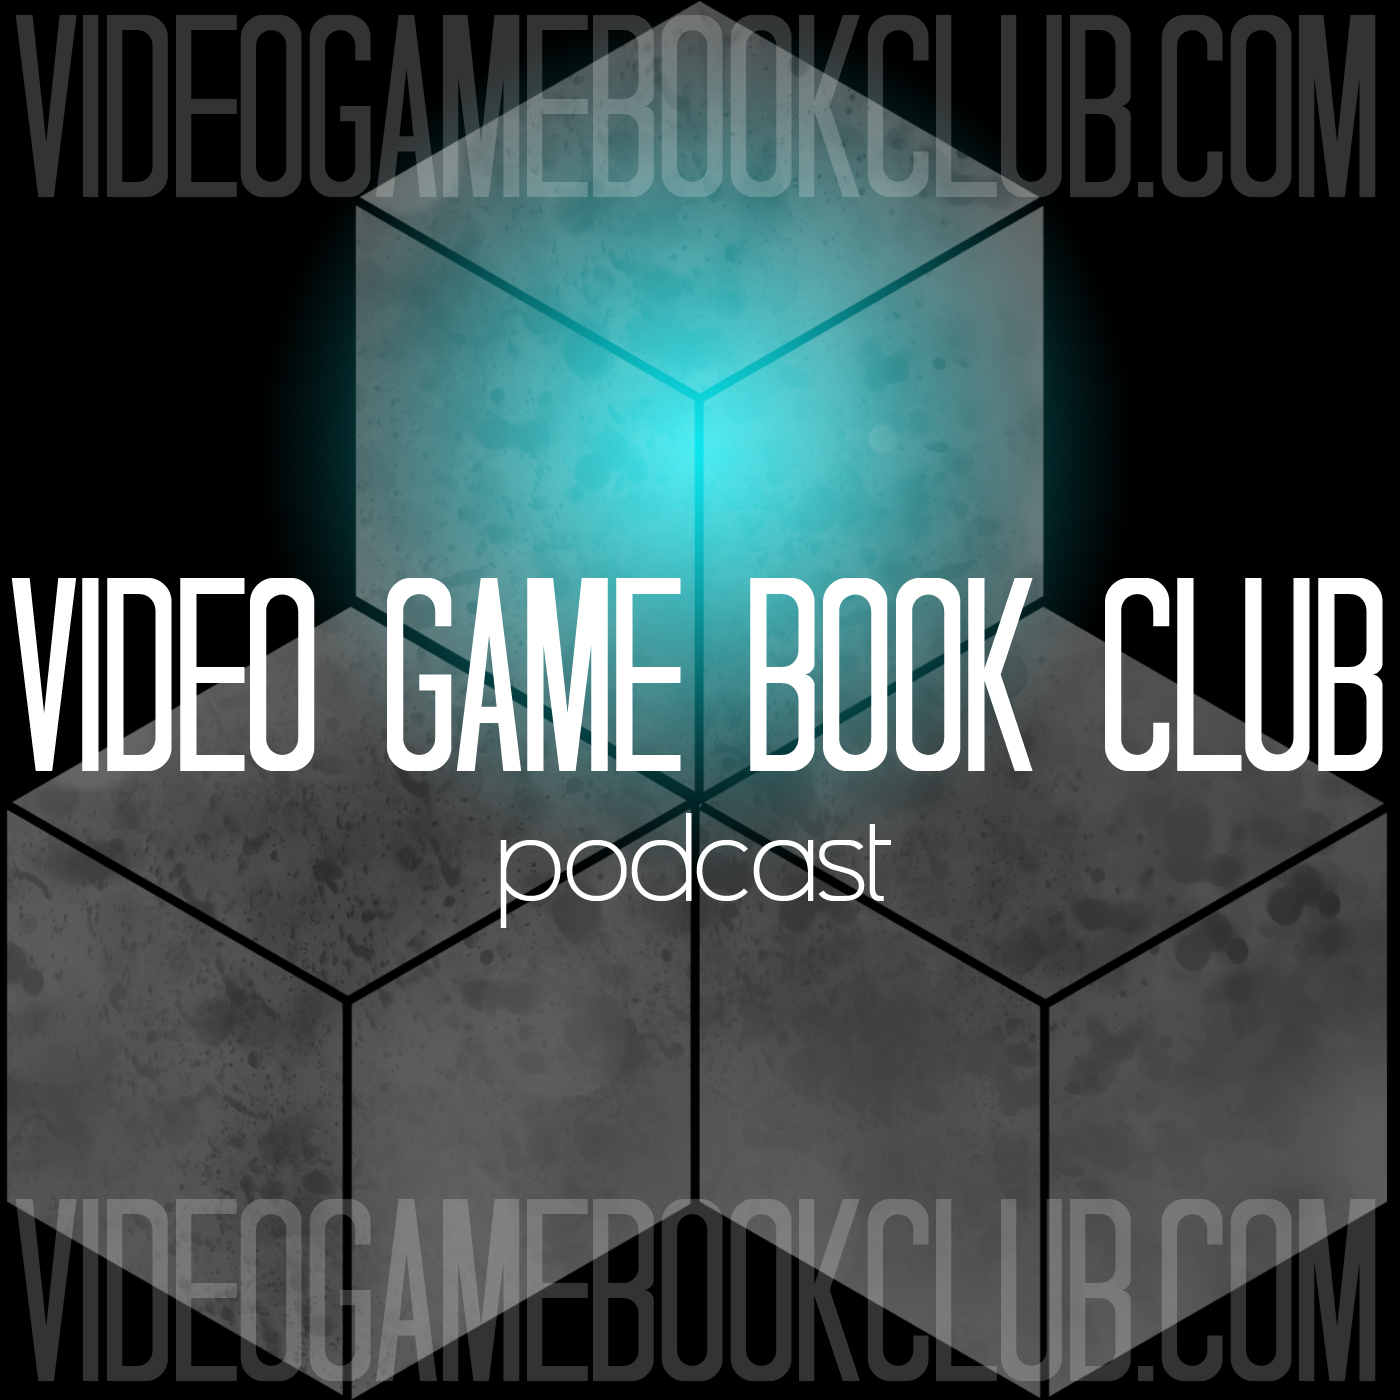 Video Game Book Club Podcast logo